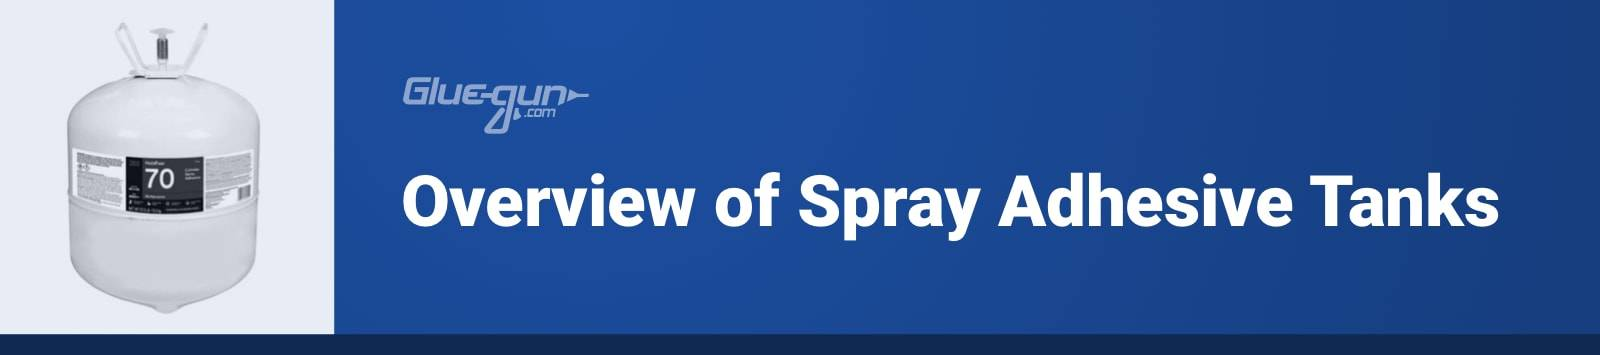 Overview of Spray Adhesive Tanks